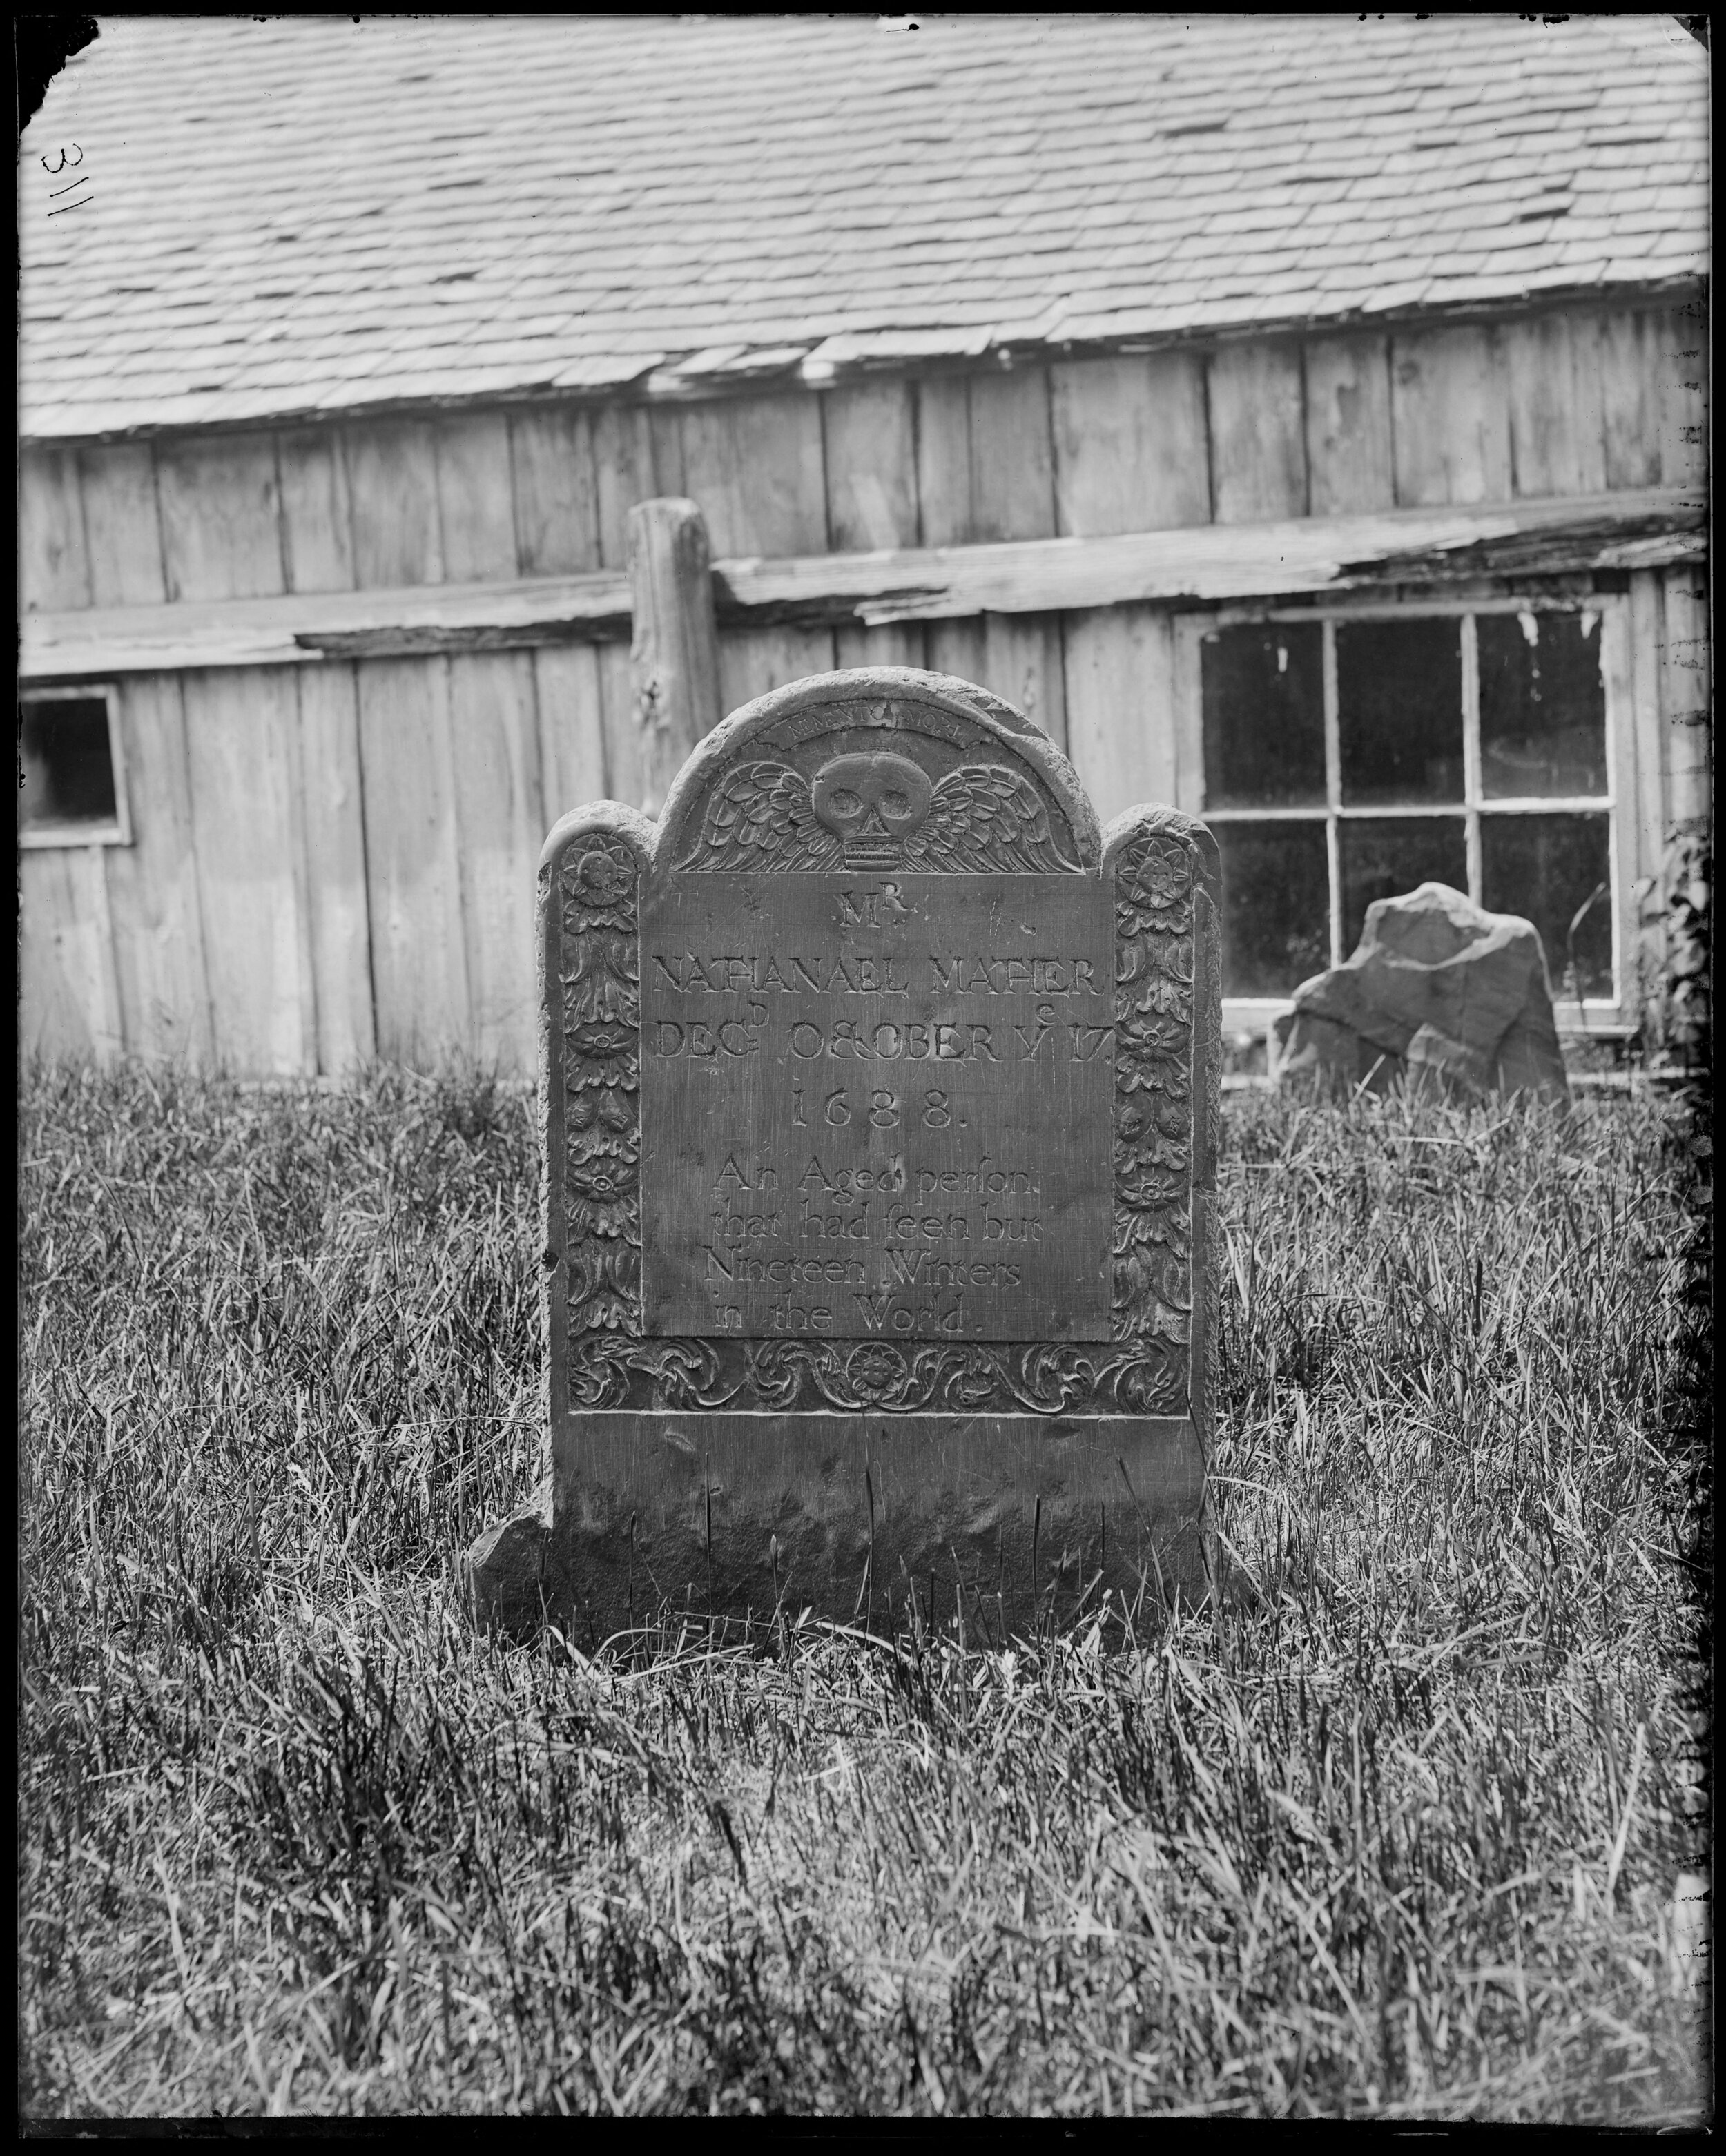 """NATHANIEL MATHER   Son of Increase Mather and brother of Cotton Mather, famous Puritan ministers. Inscription reads """"An Aged Person that has seen but 19 winters in this world"""". Nathaniel entered Harvard College at the age of 12, graduated at 16 and died at 19. Stone was carved by William Mumford.   Frank Cousins, (Monuments, Nathaniel Mather grave, Salem, Charter Street Cemetery], [1864-1914], Frank Cousins Collection of Glass Plate Negatives, Courtesy of Phillips Library, Peabody Essex Museum, Salem, MA."""